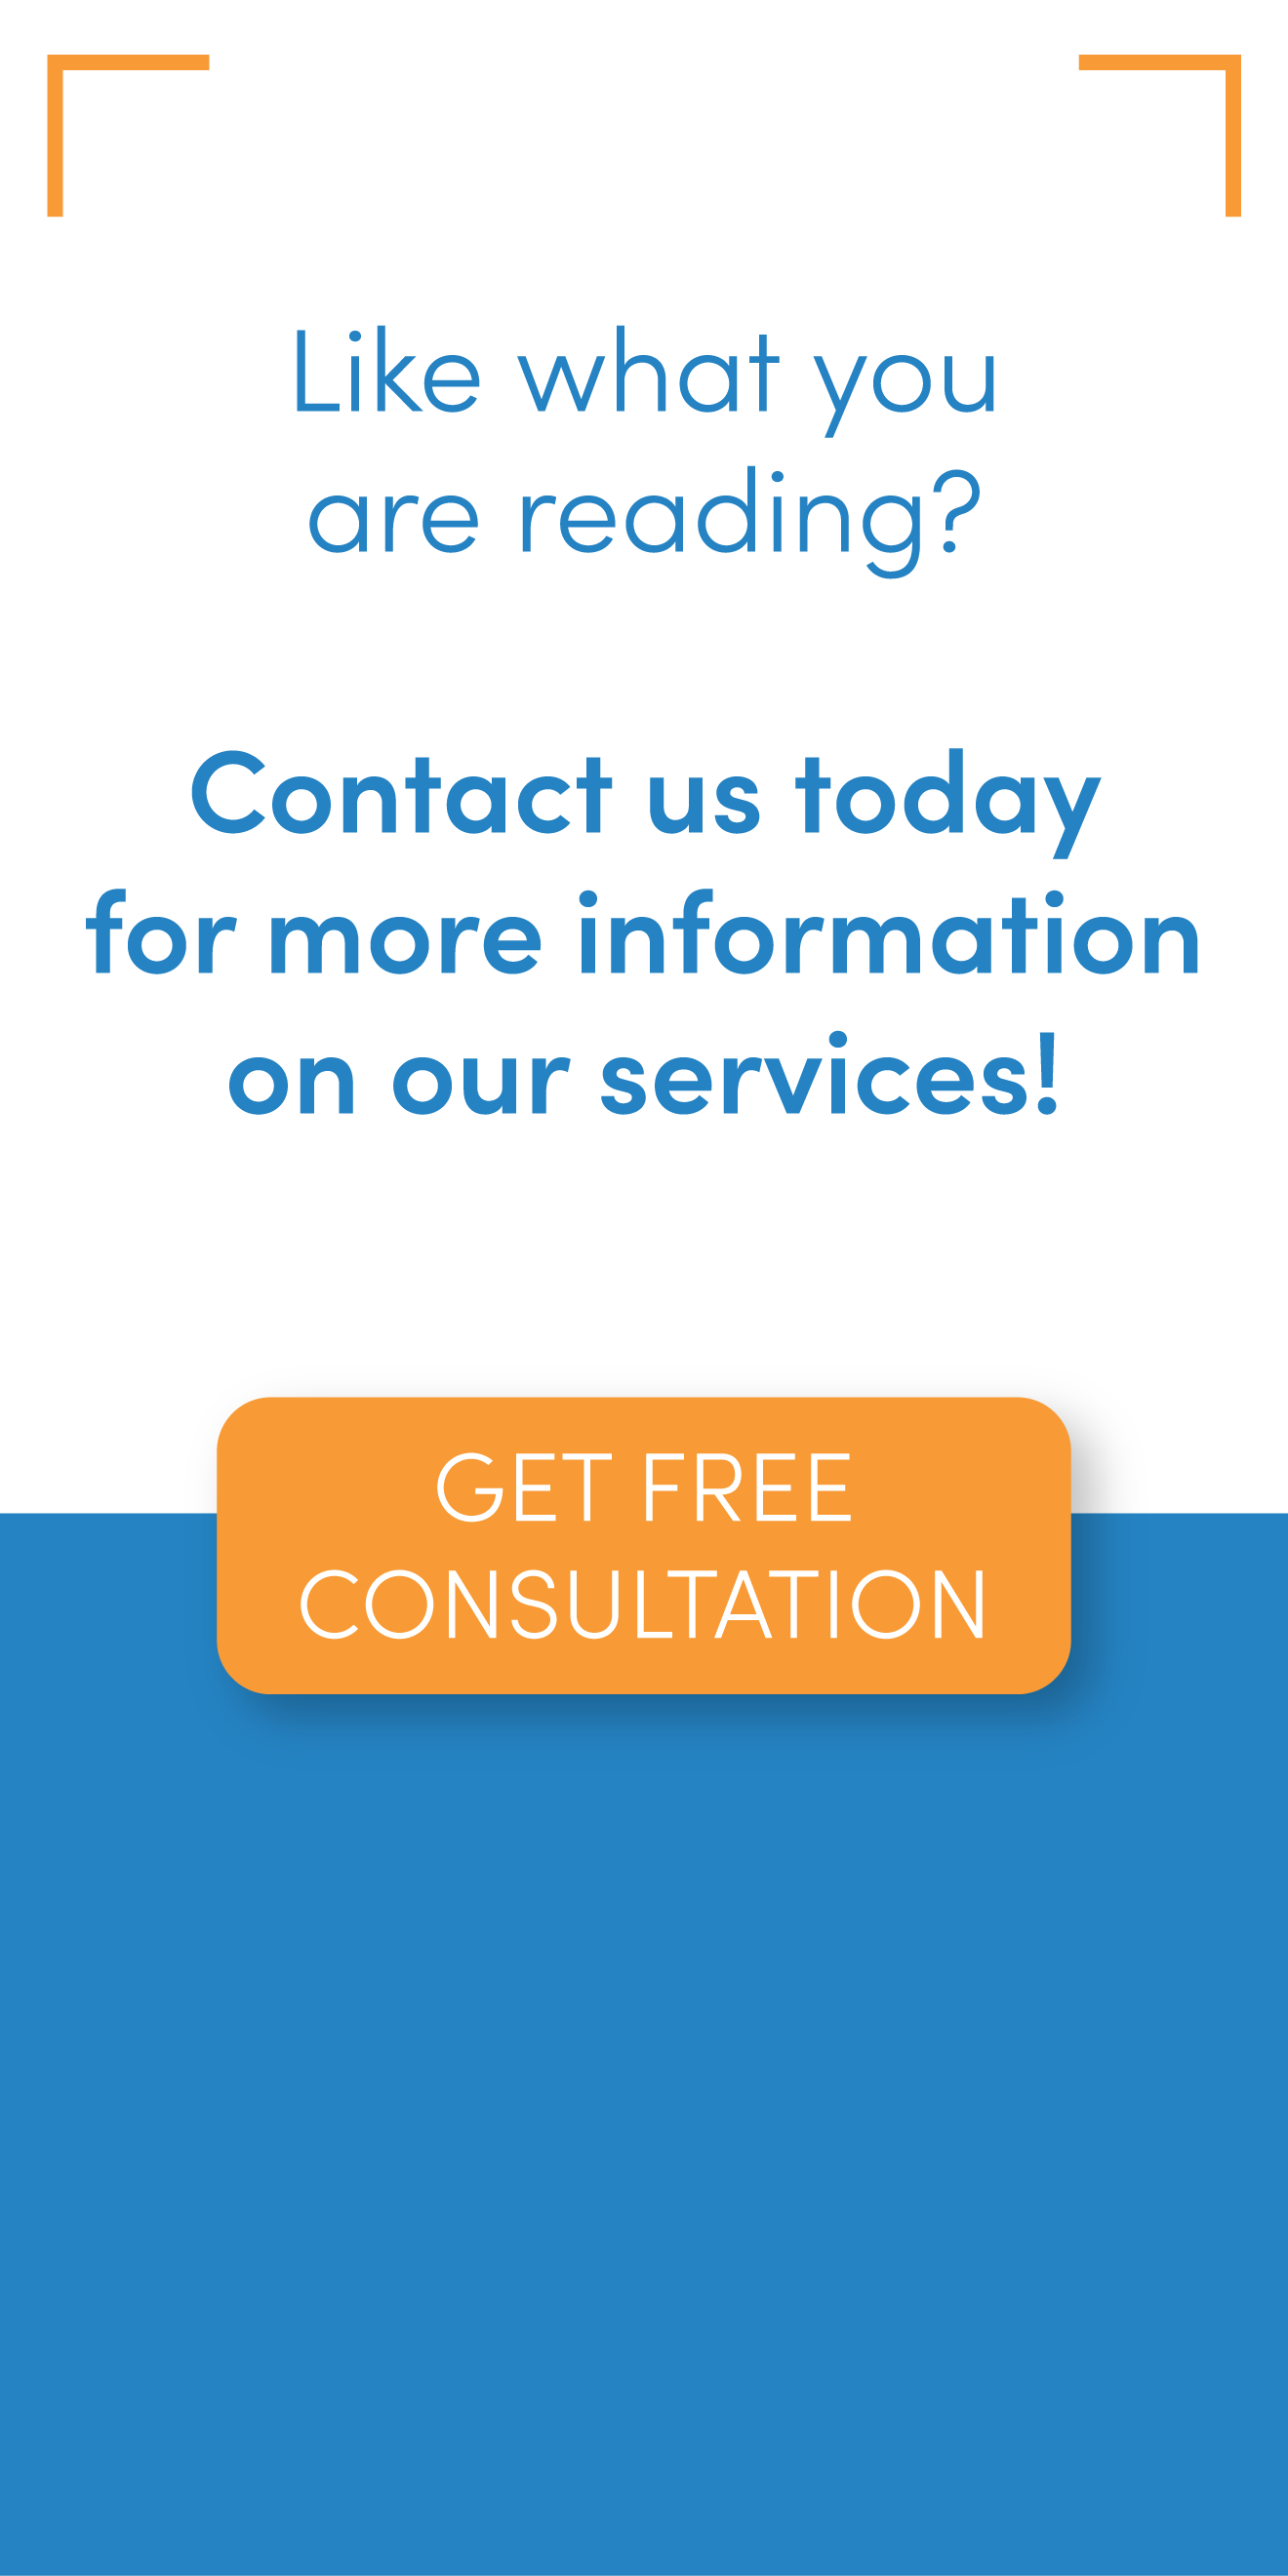 Contact us today for more information on our services!